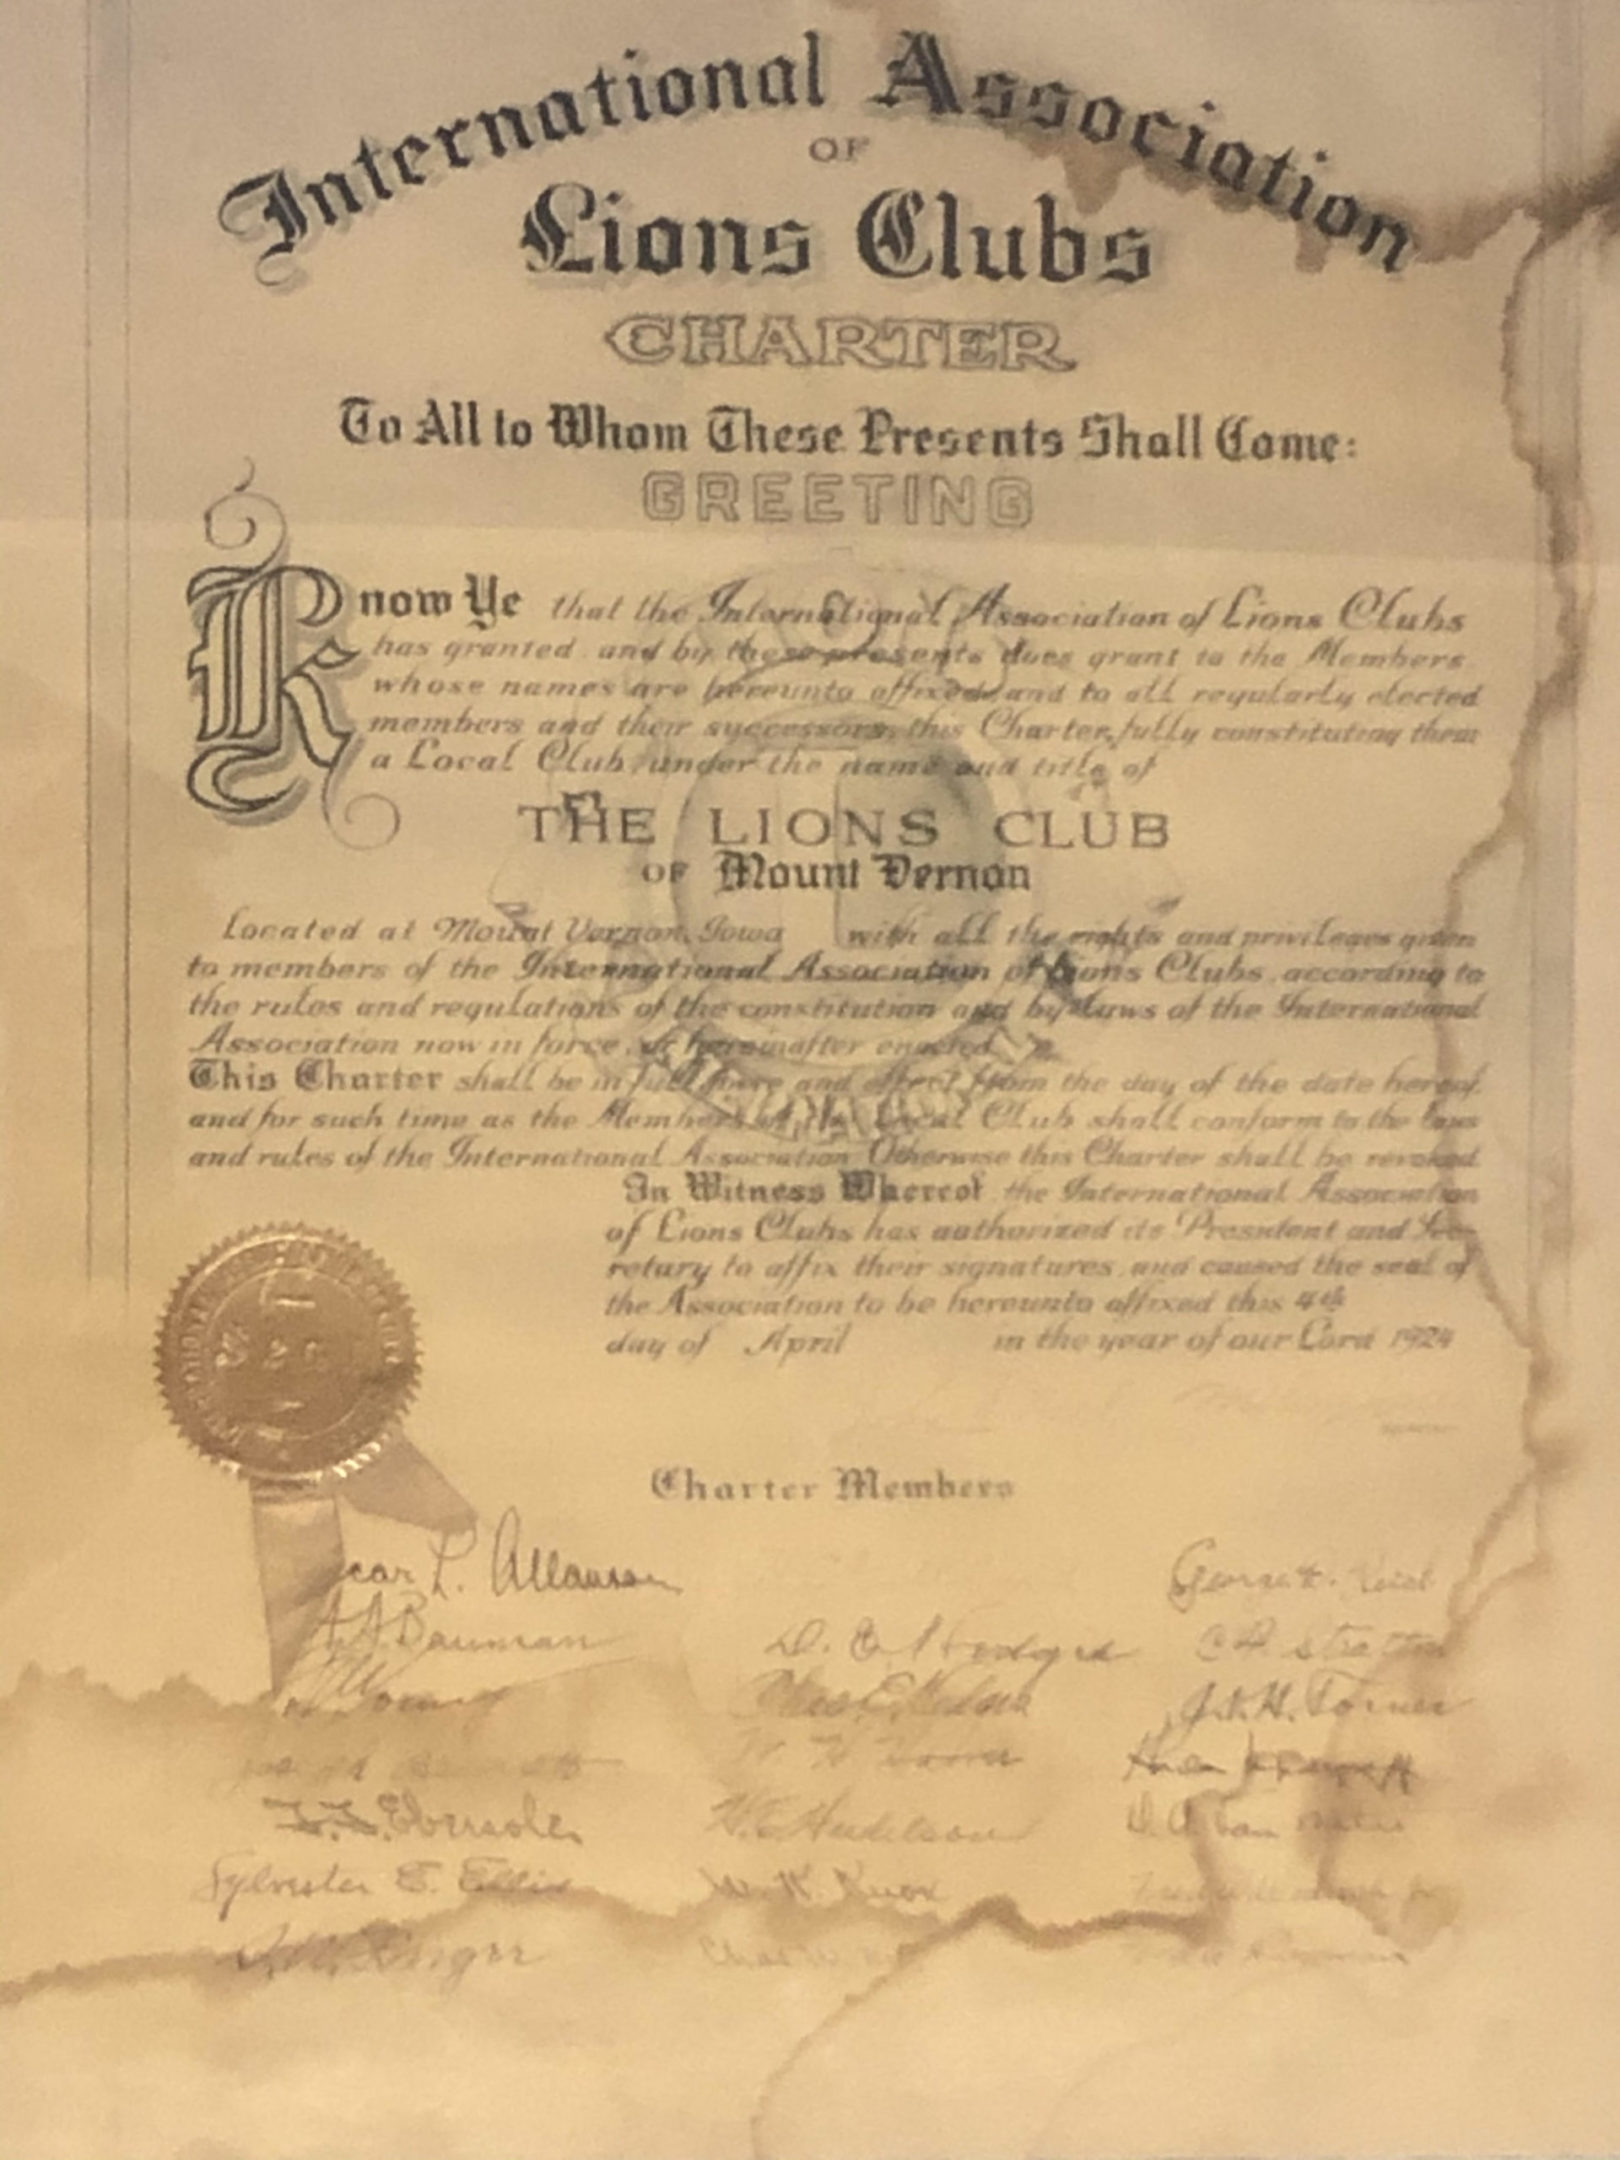 photo of the Lions Club Charter document